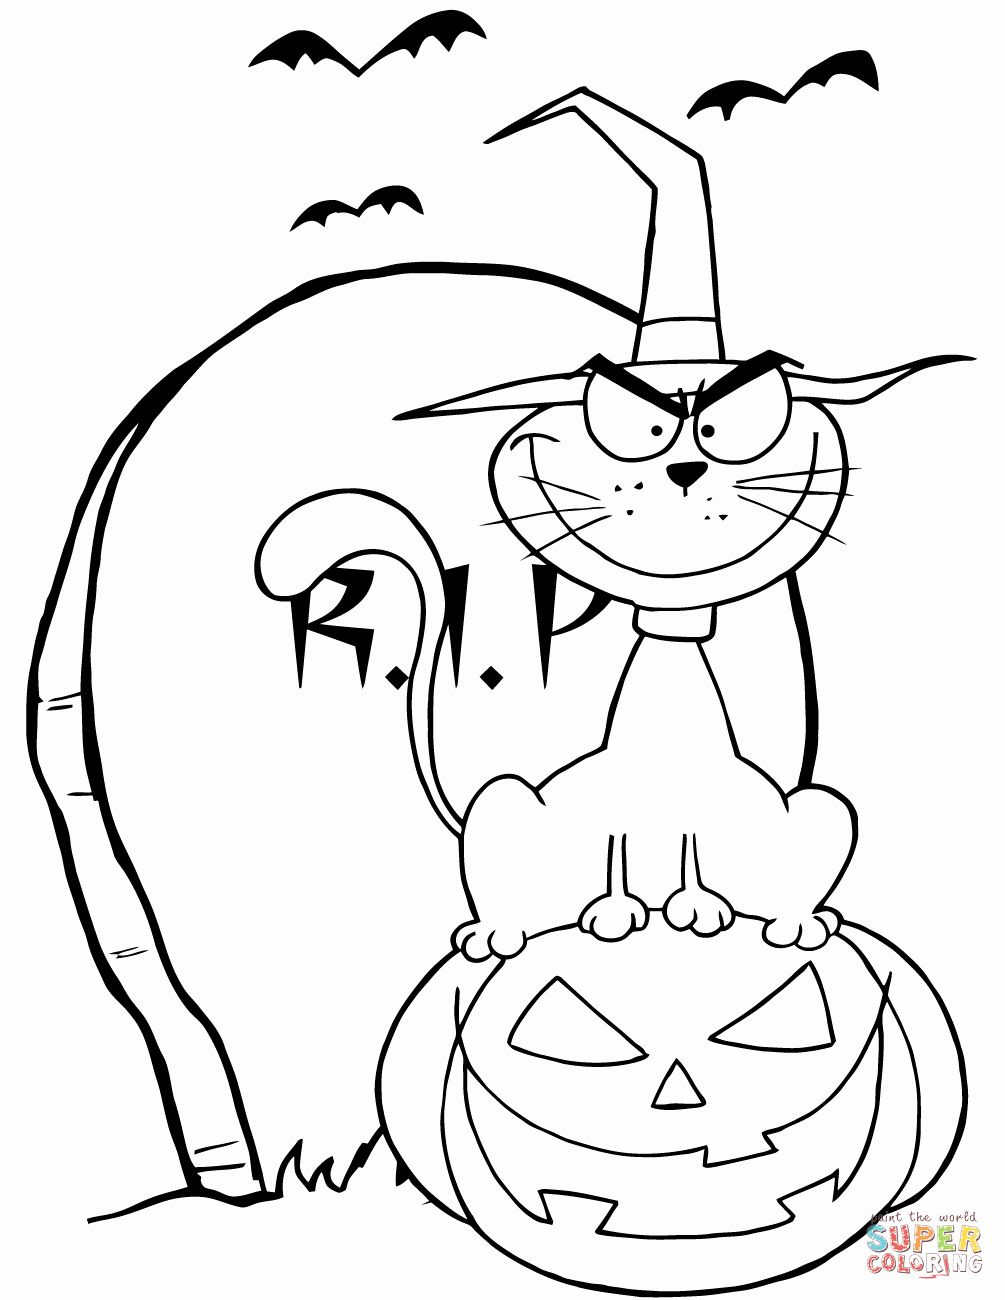 Halloween Printable Coloring Pages Awesome Halloween Cat On Pumpkin Near Tombstone Coloring Page Gambar Warna Kartun